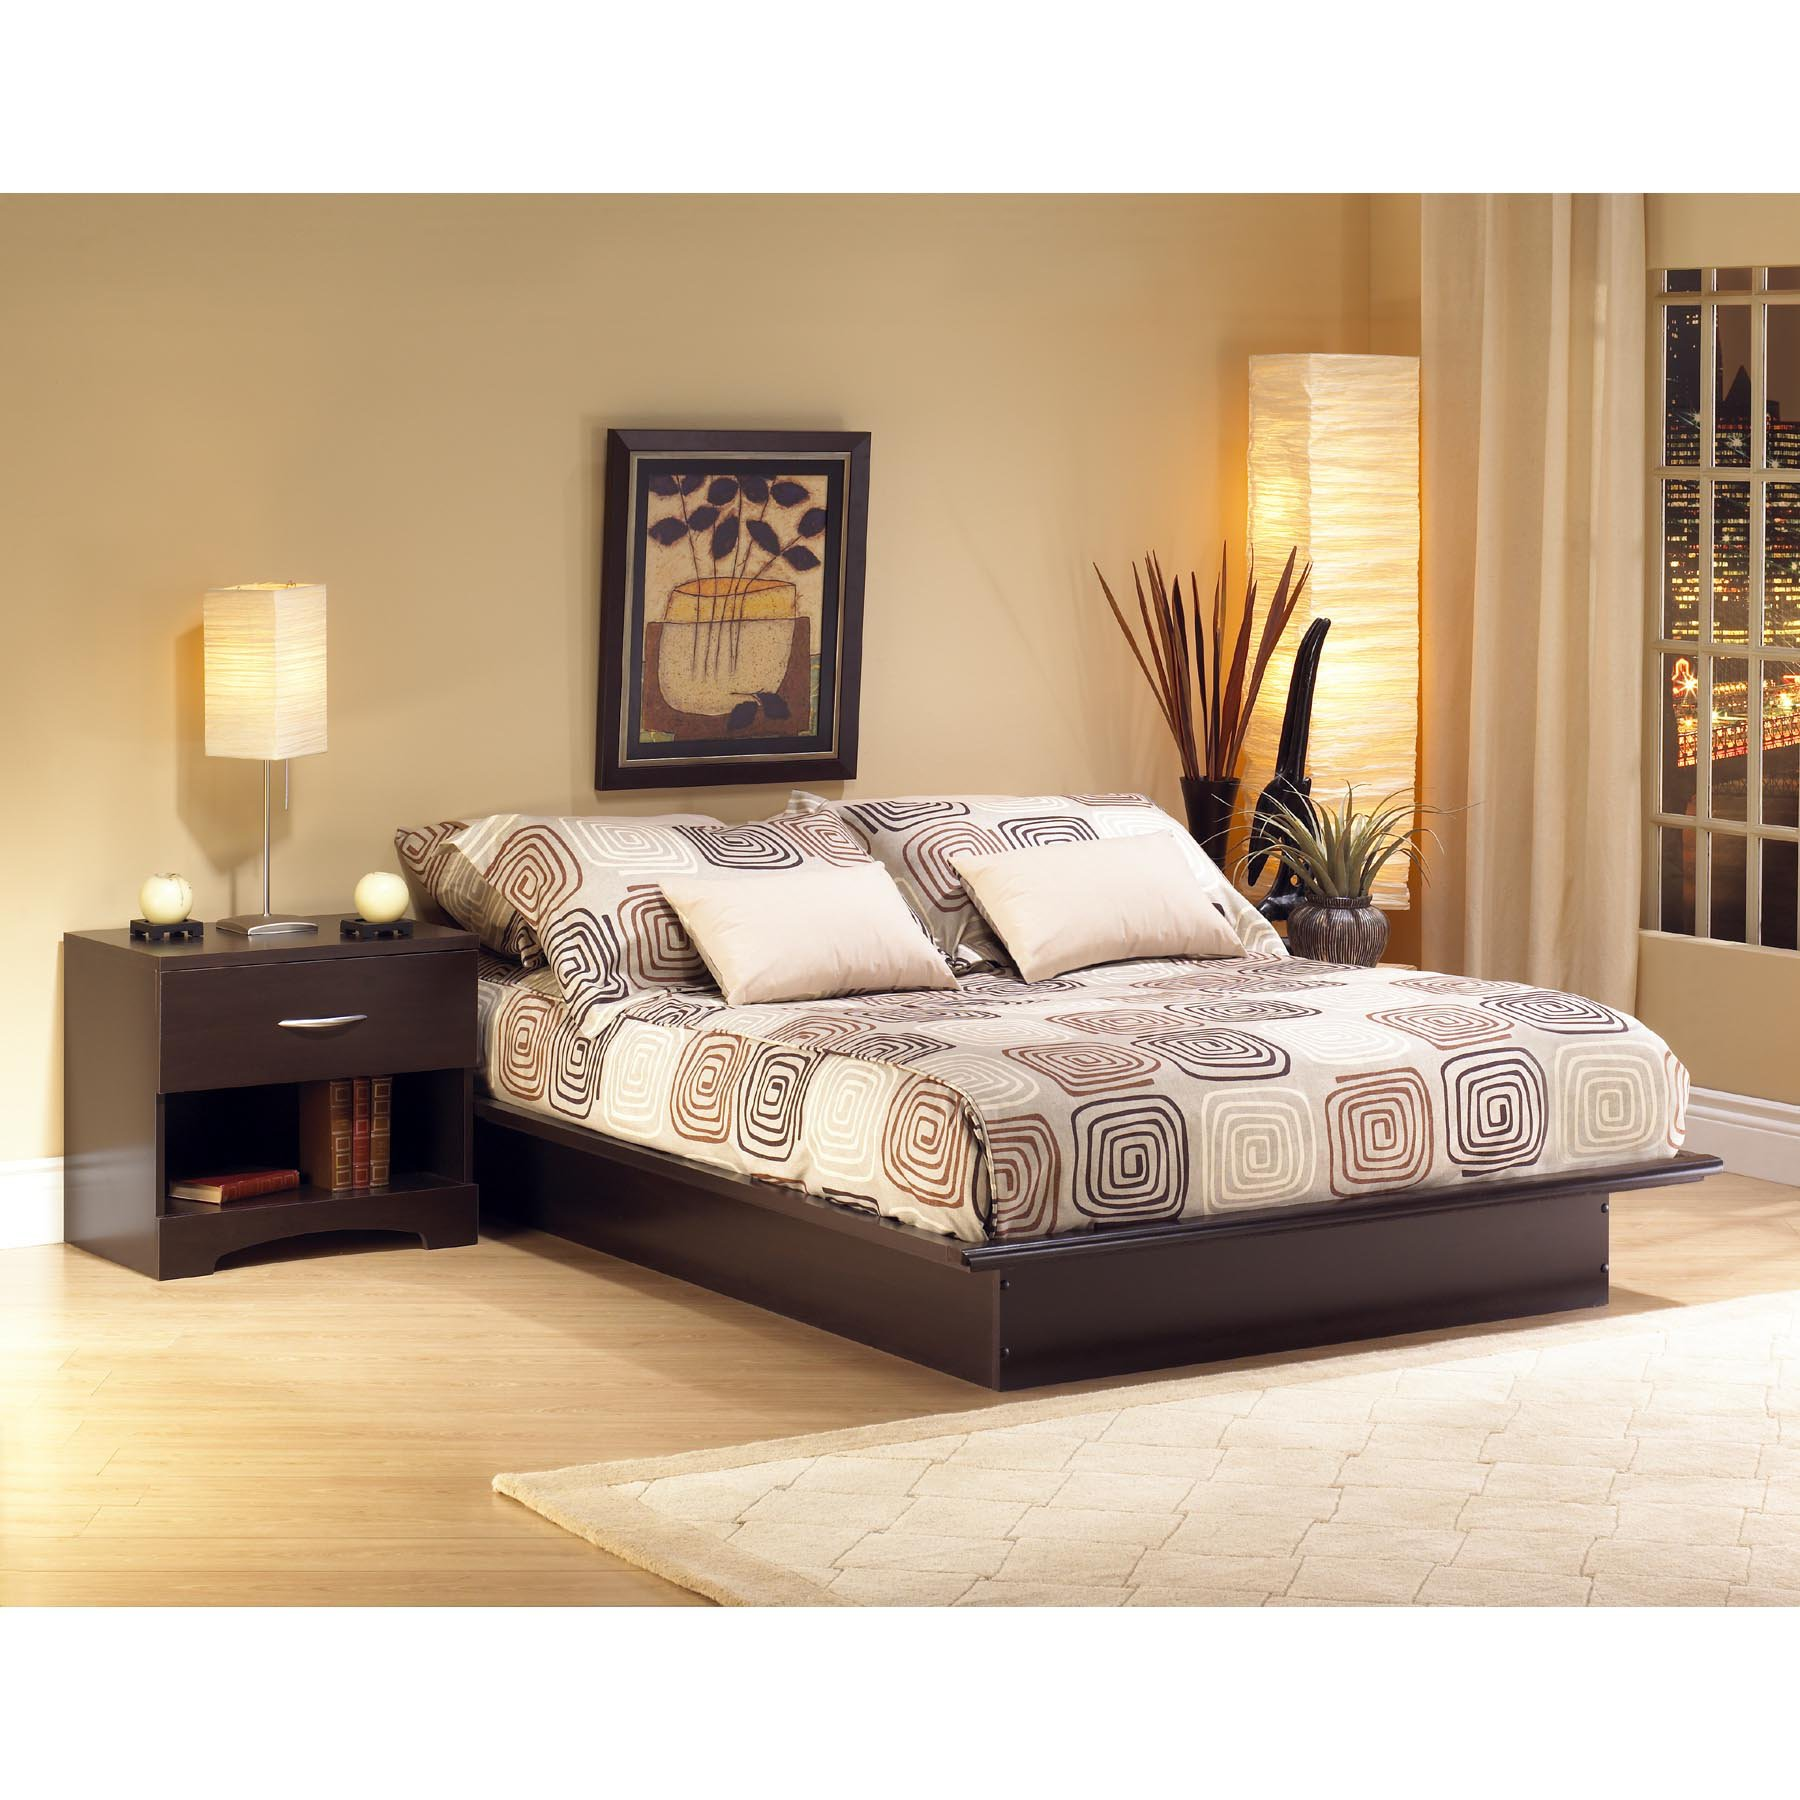 South Shore Canyon Platform Bed Set by South Shore Industries Ltd